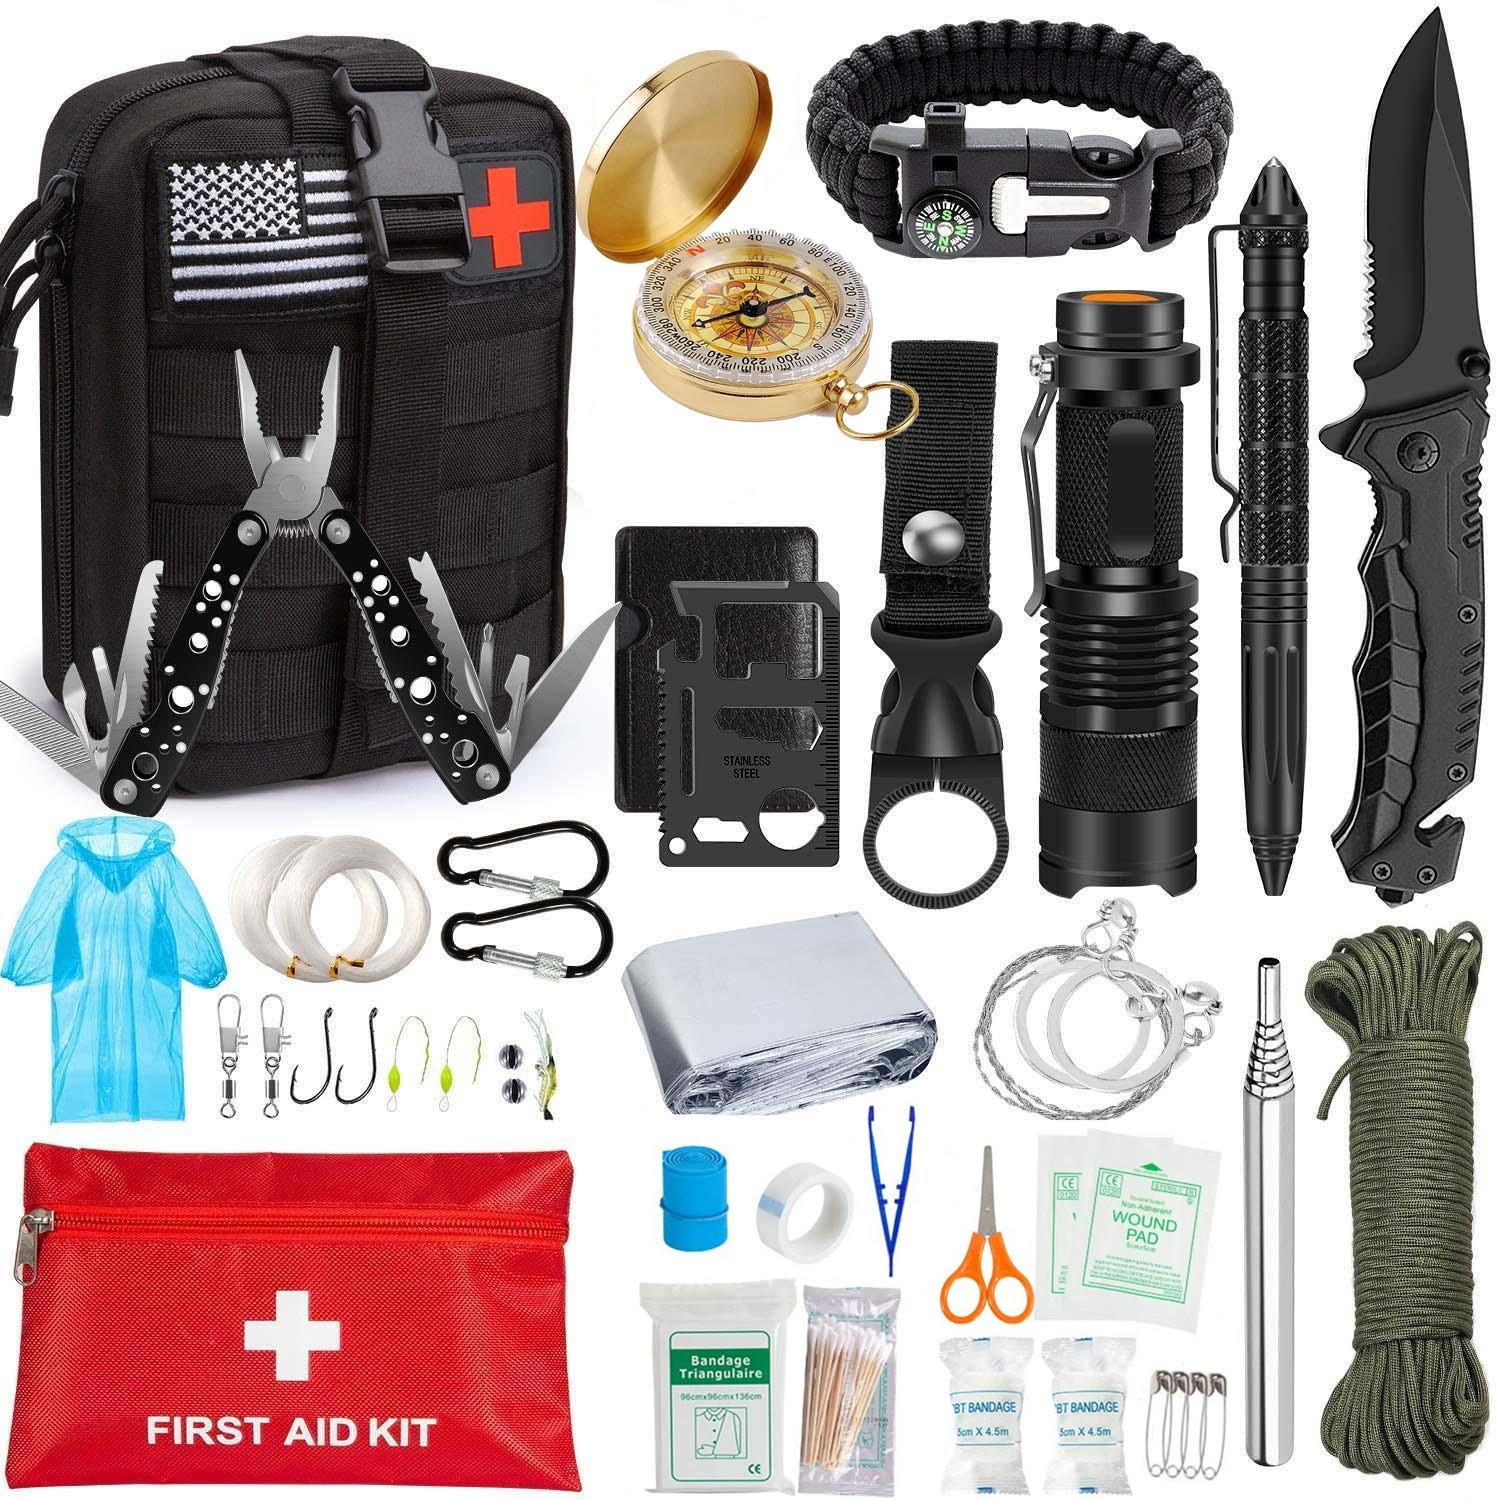 Survival First Aid Kit, Tactical Molle IFAK Pouch Emergency First Aid Survival Kits Camp Tool Trauma Bag Outdoor Gear